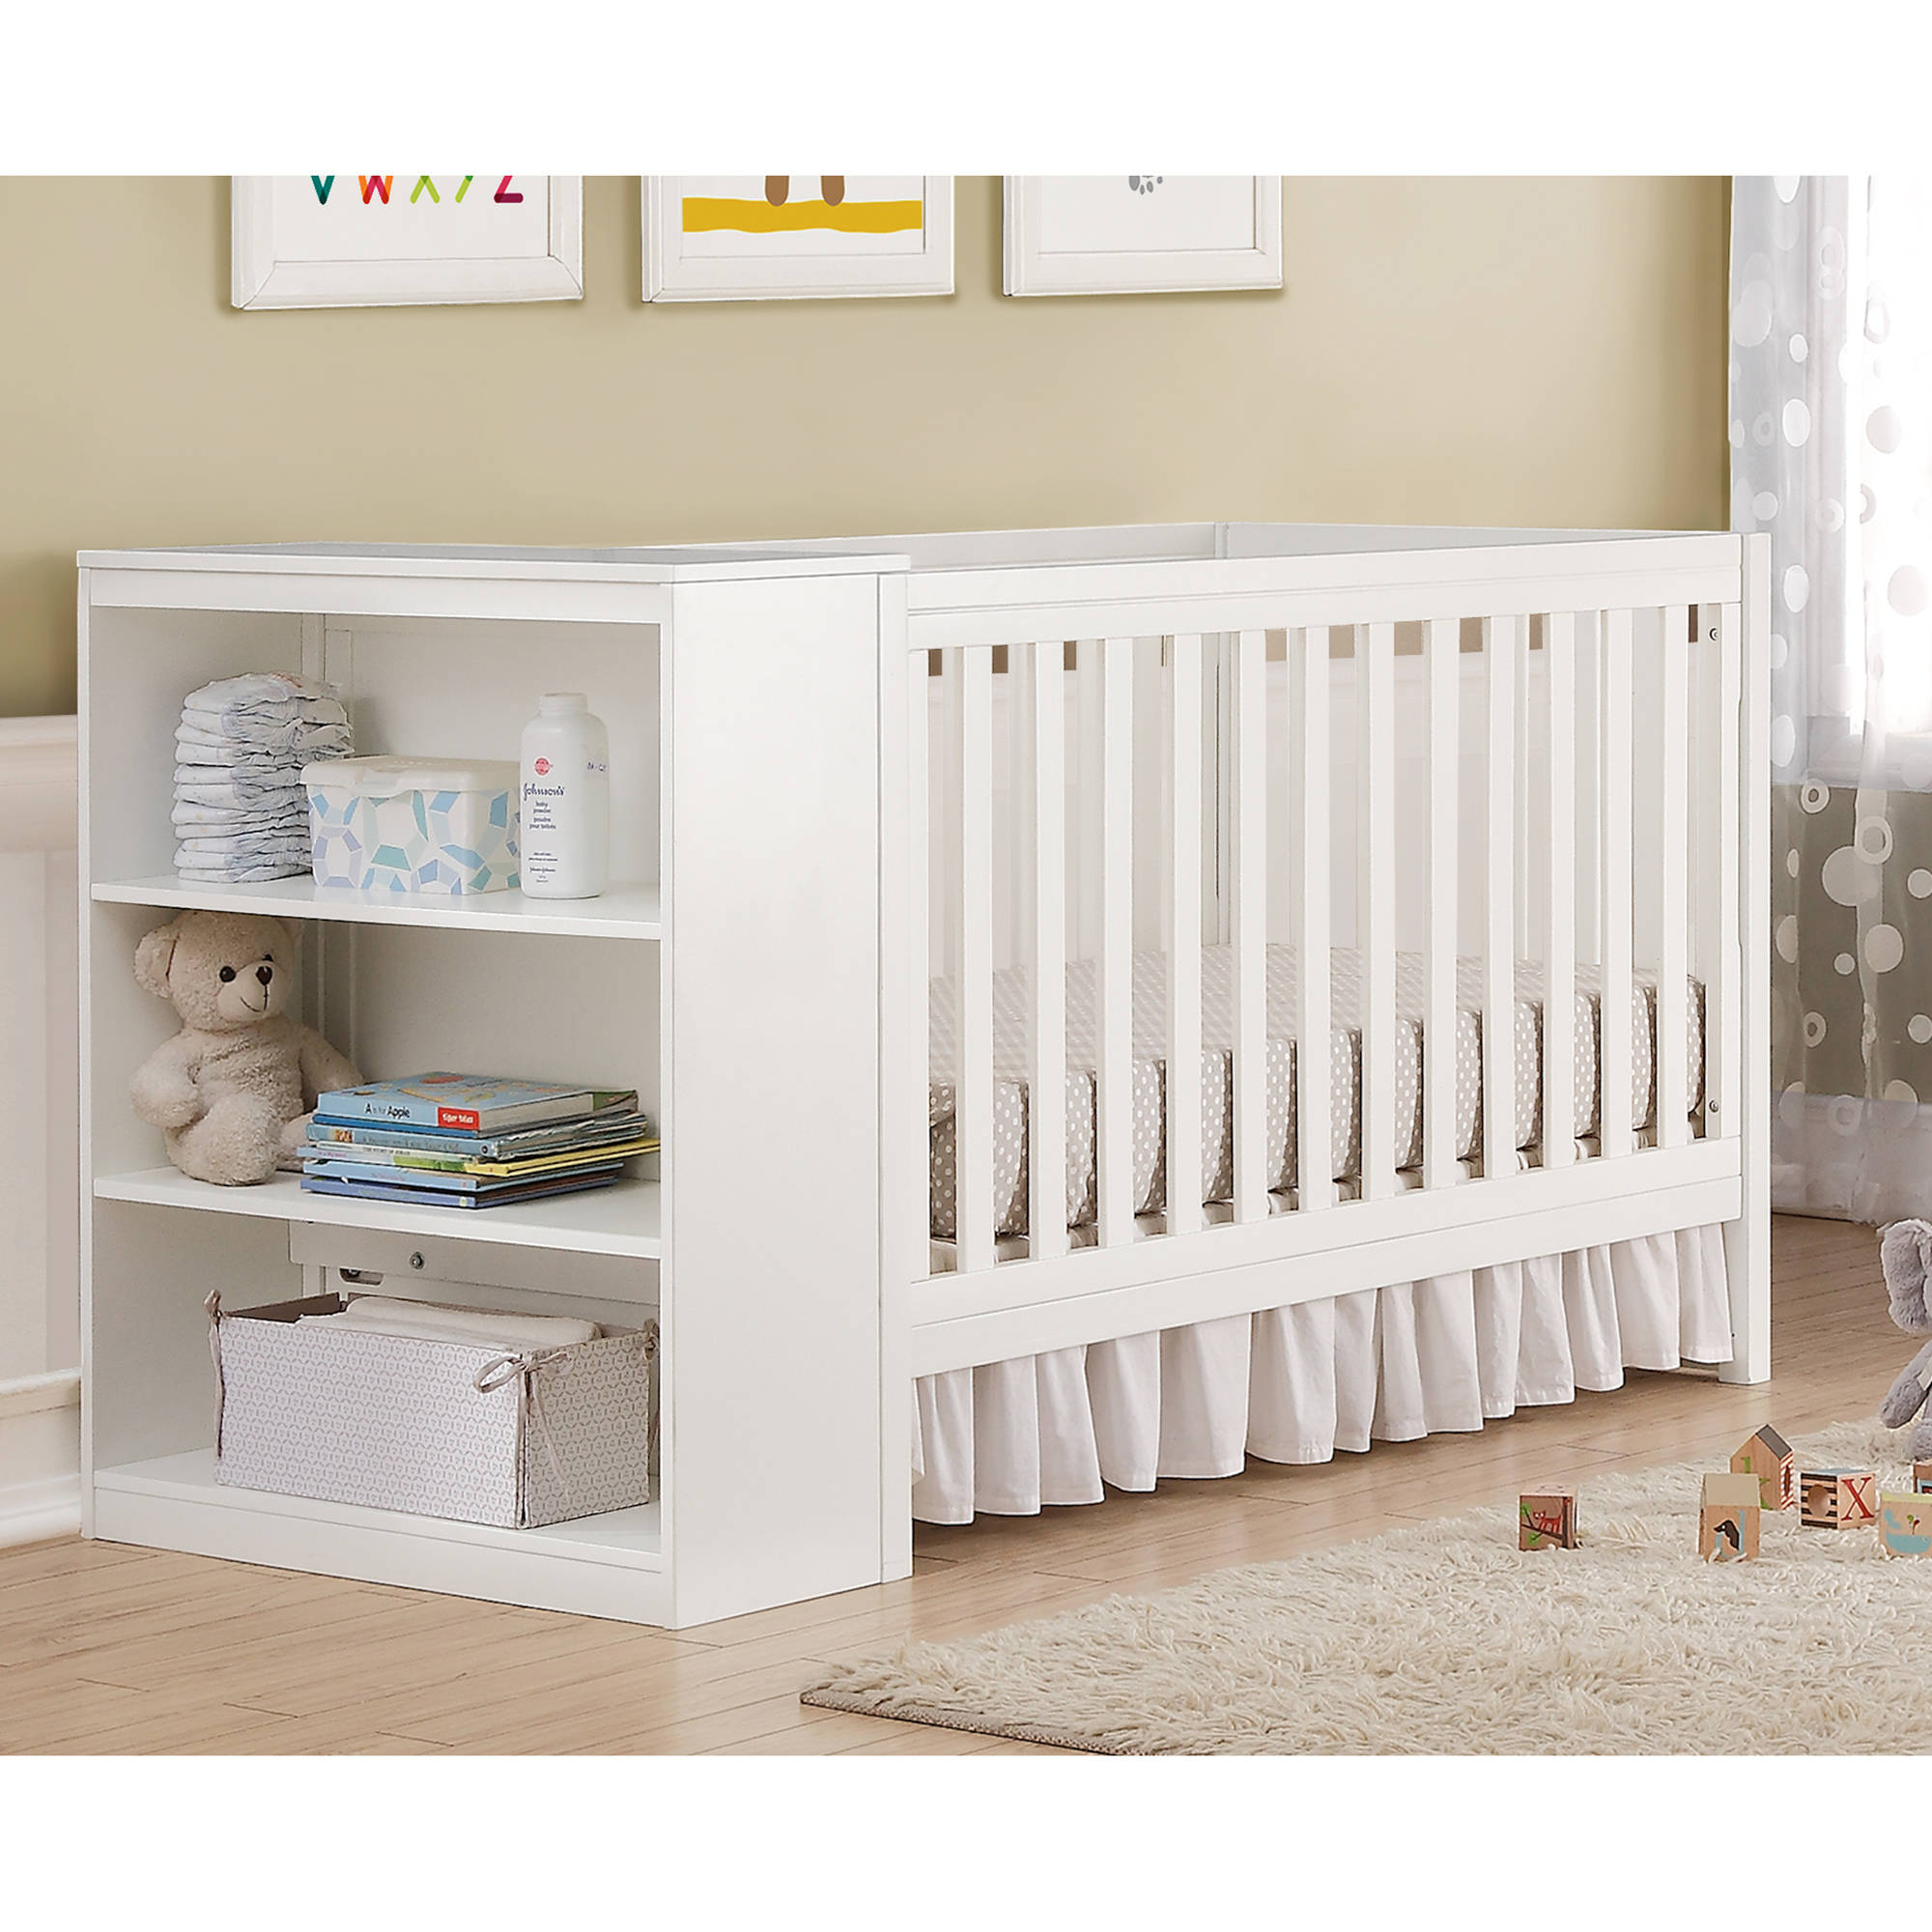 Baby Relax Ayla 2-in-1 Convertible Crib with Storage White